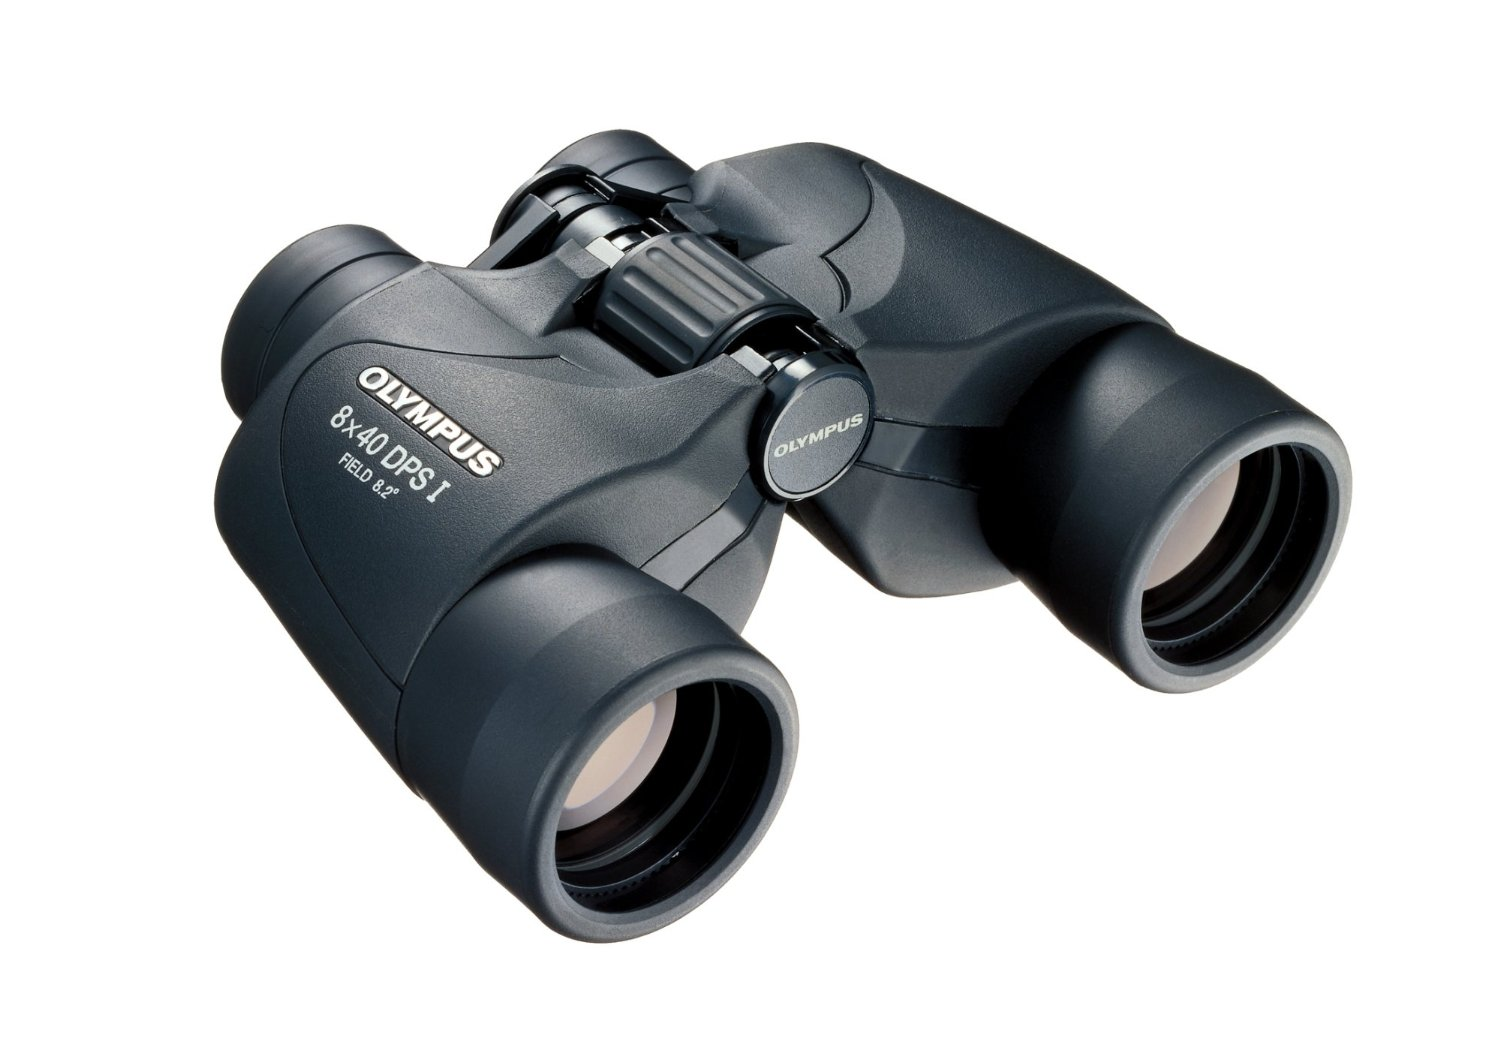 olympus trooper 8x40 dps 1 binoculars review: best general purpose binoculars